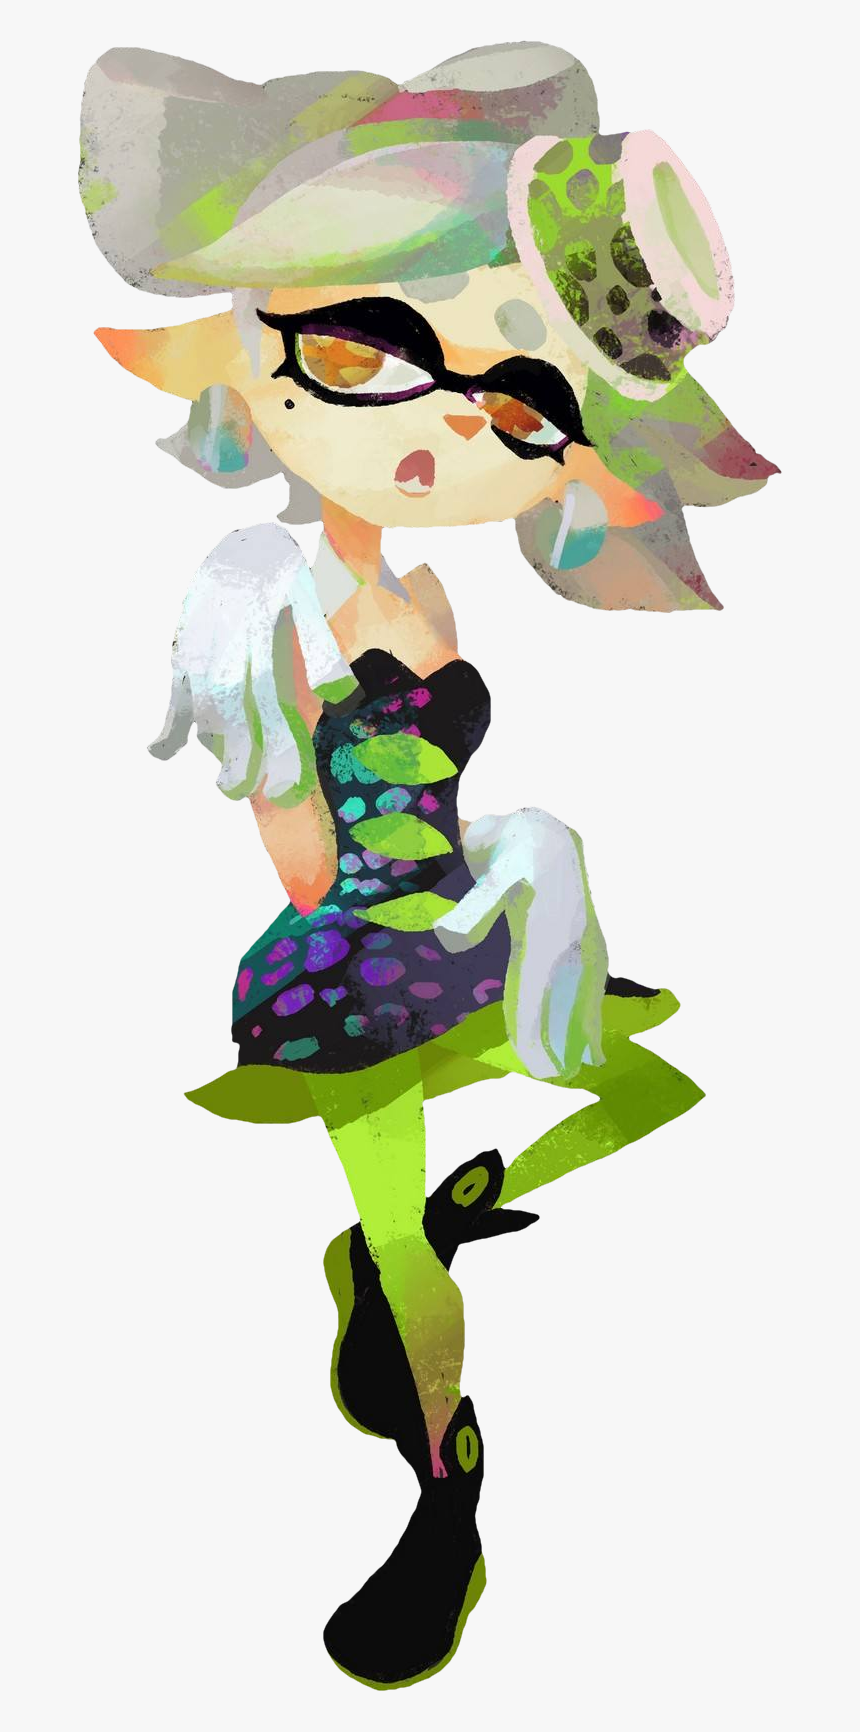 Shared By Squid Sisters Transparent - Squid Sisters, HD Png Download, Free Download